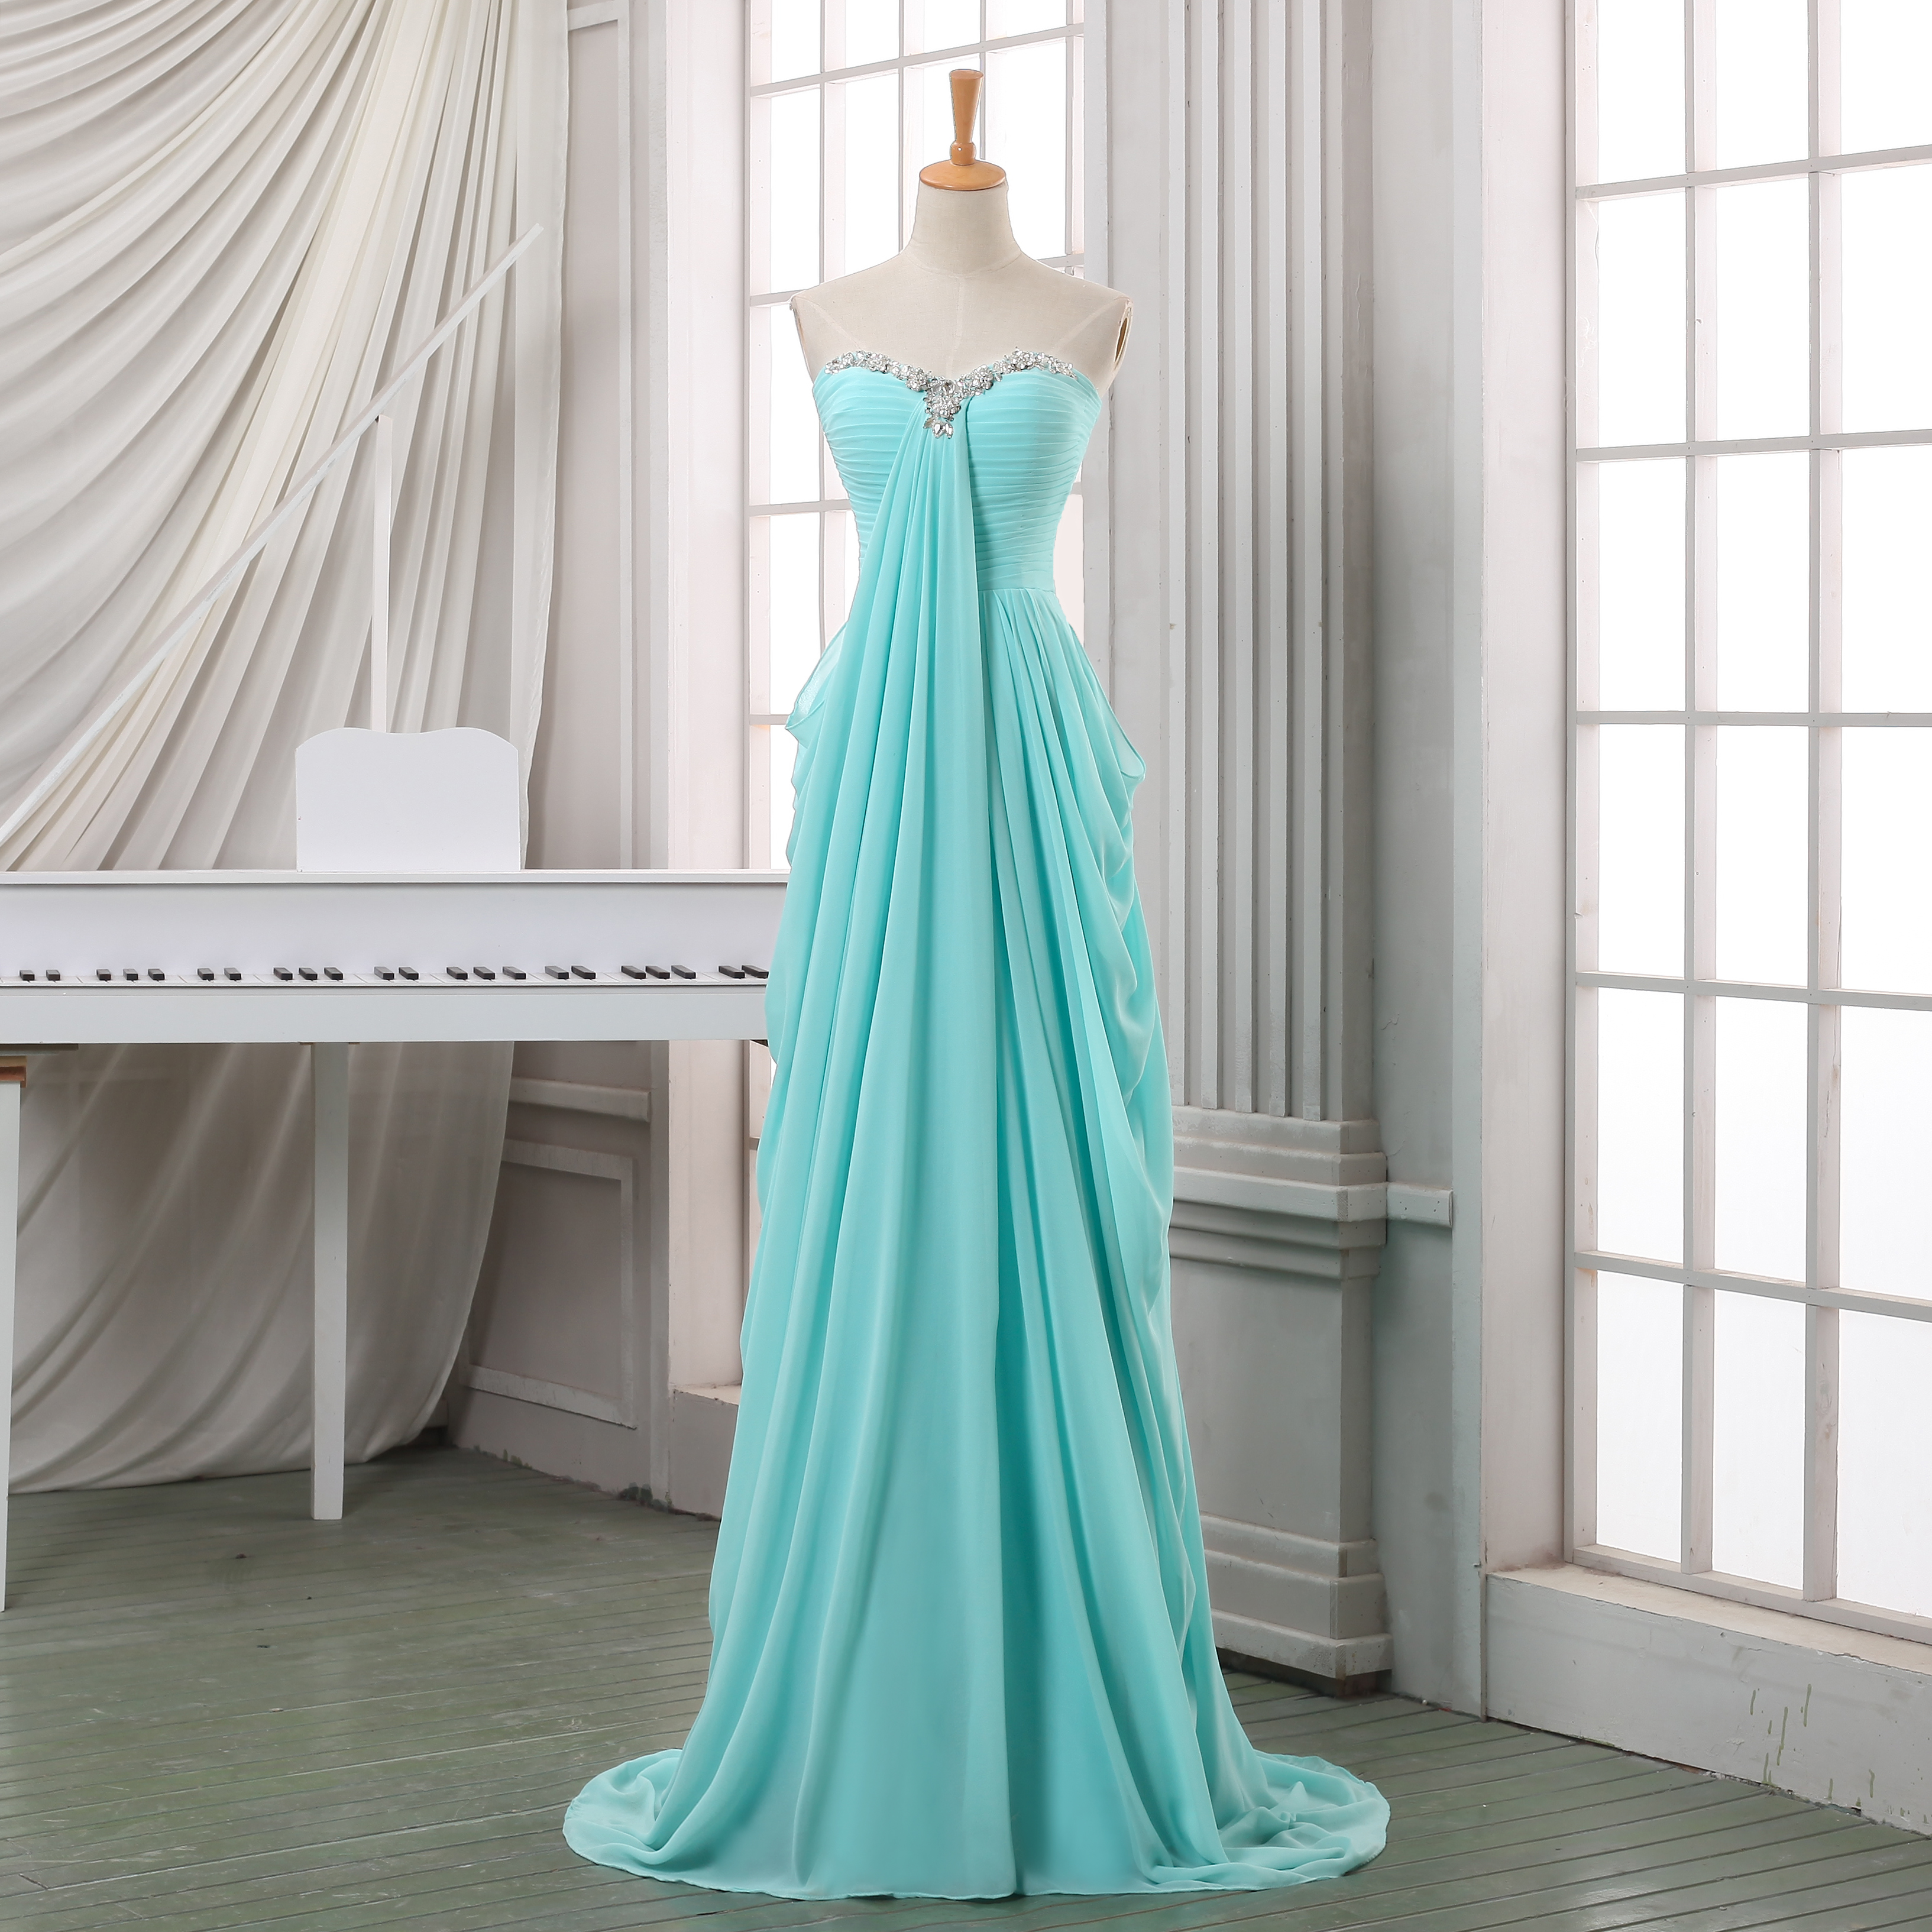 Long Pleated Chiffon Prom Dress A Line Sweeetheart Prom Dress baby